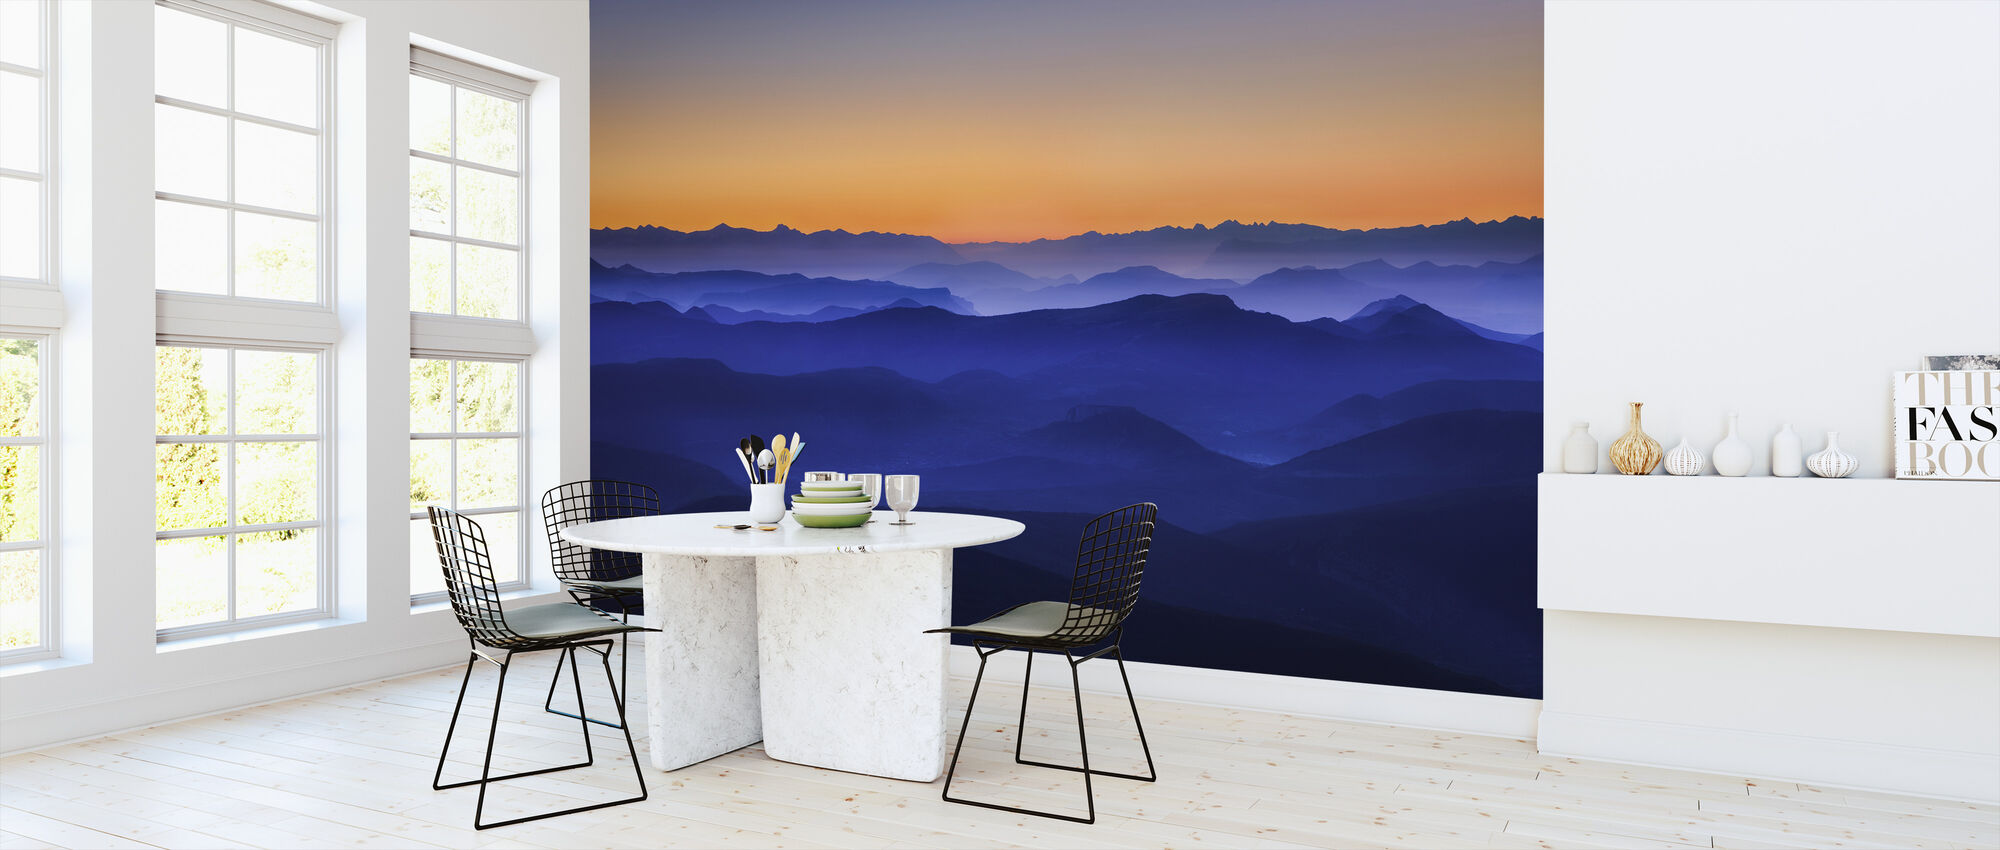 Misty Mountains - Wallpaper - Kitchen